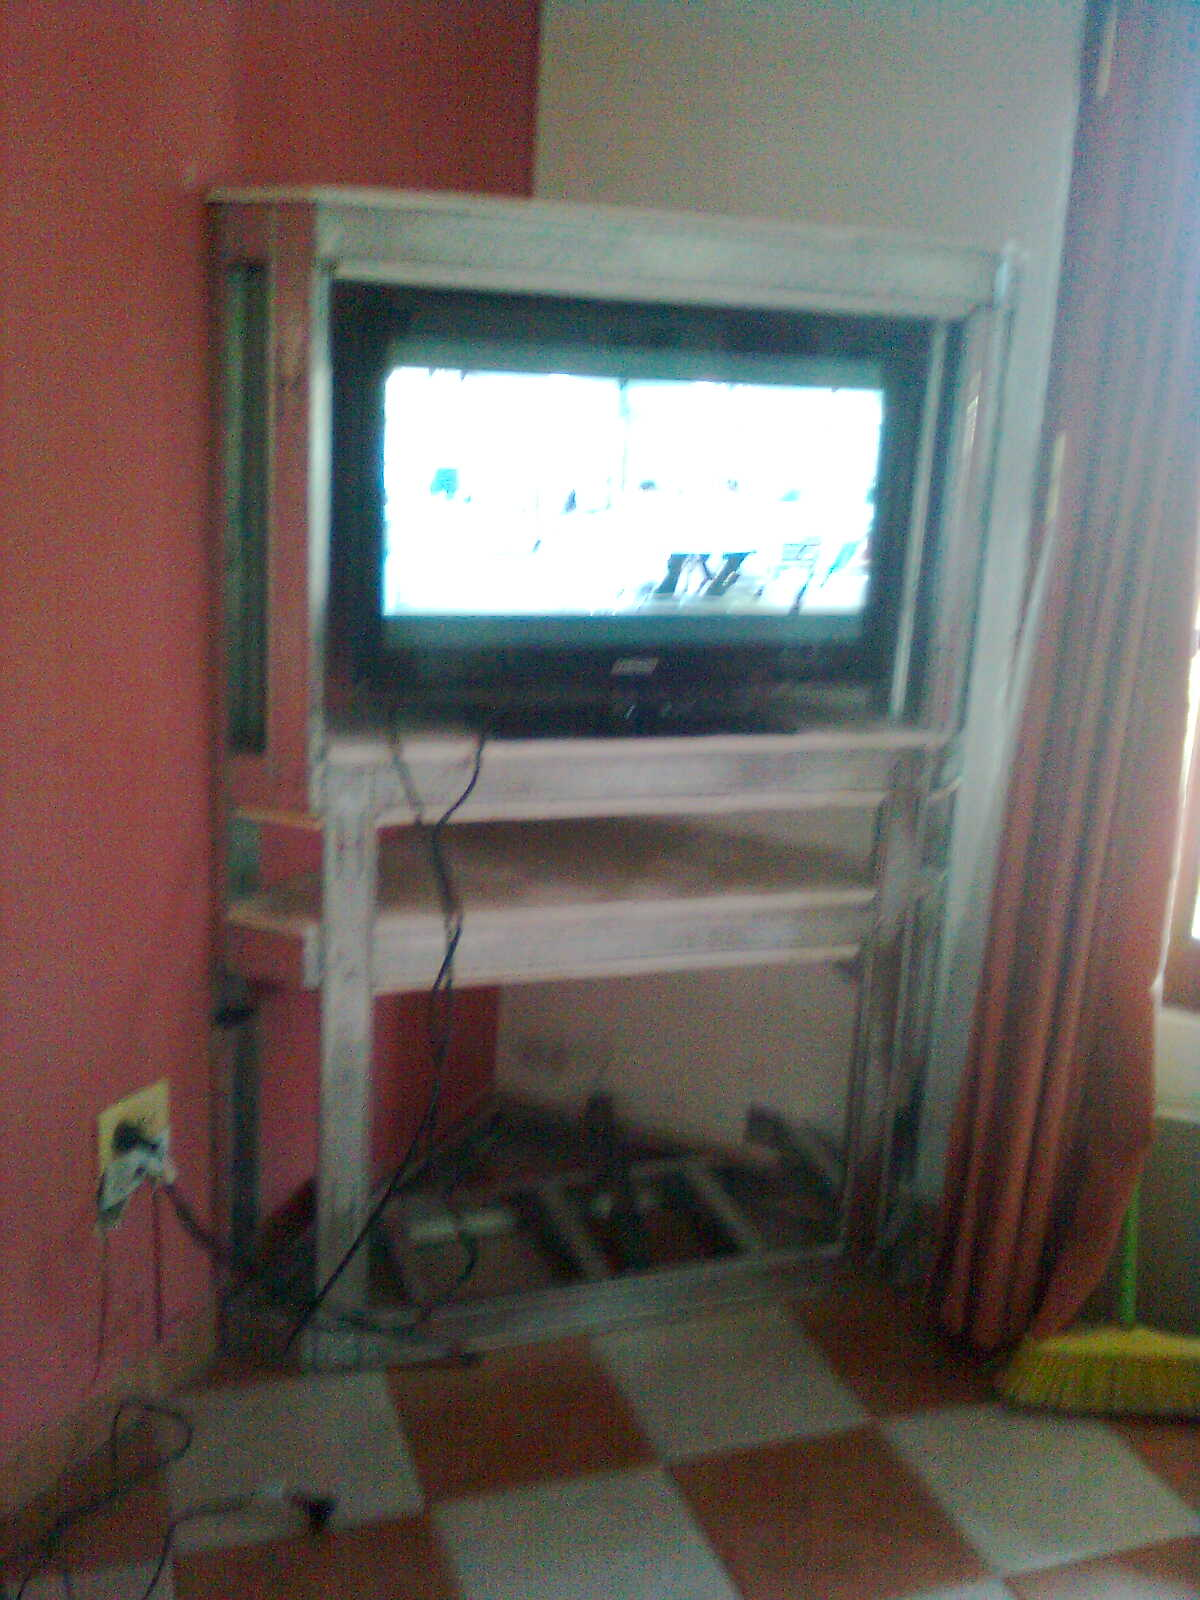 Mueble Tv Esquina Free Twins Mueble Tv With Mueble Tv Esquina  # Mueble Tv Rinconero